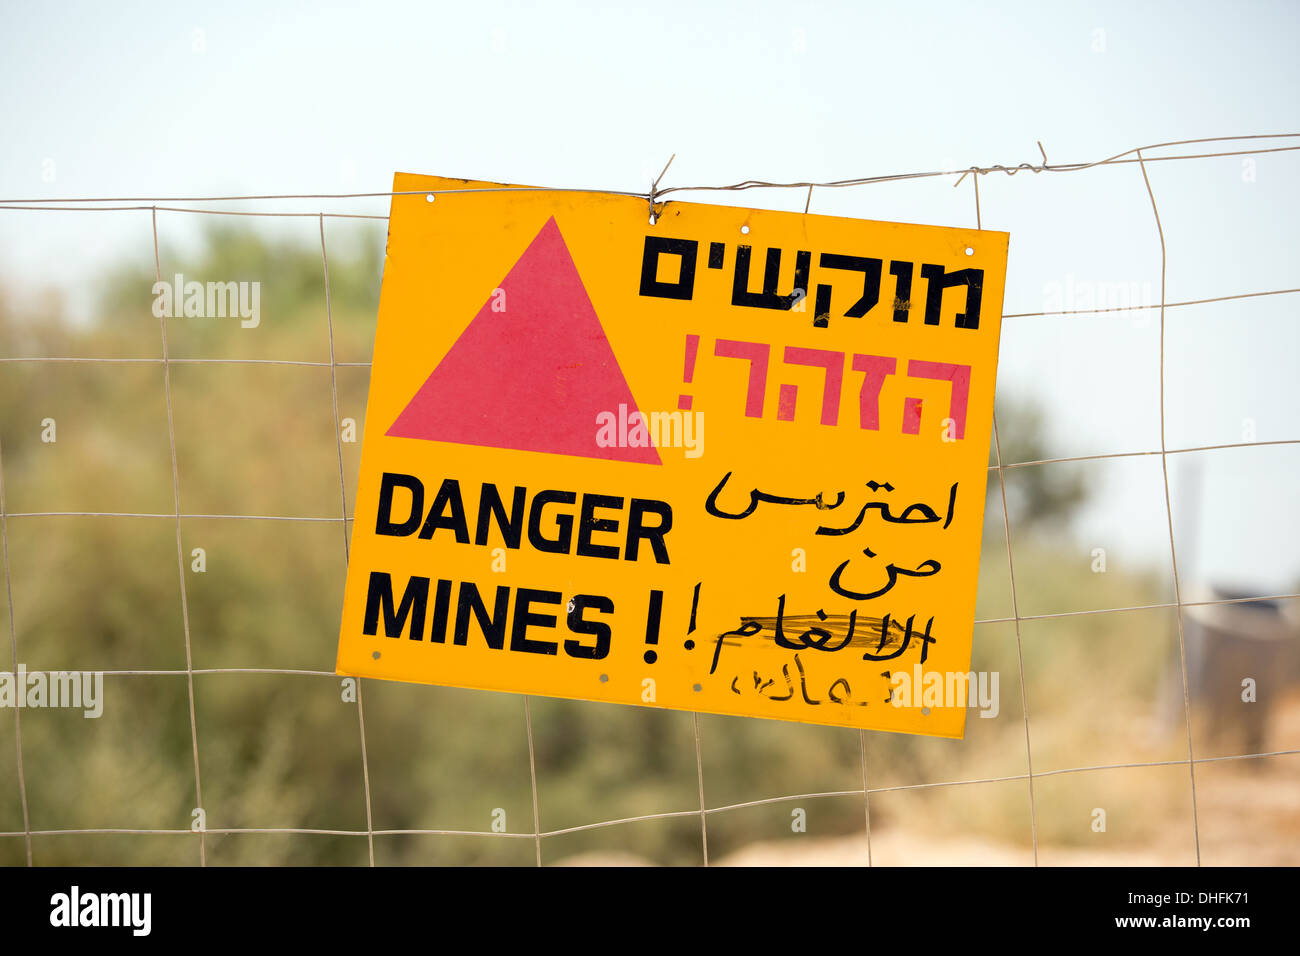 Danger Mines sign on a fence in Israel at Qasr el Yahud site - Stock Image